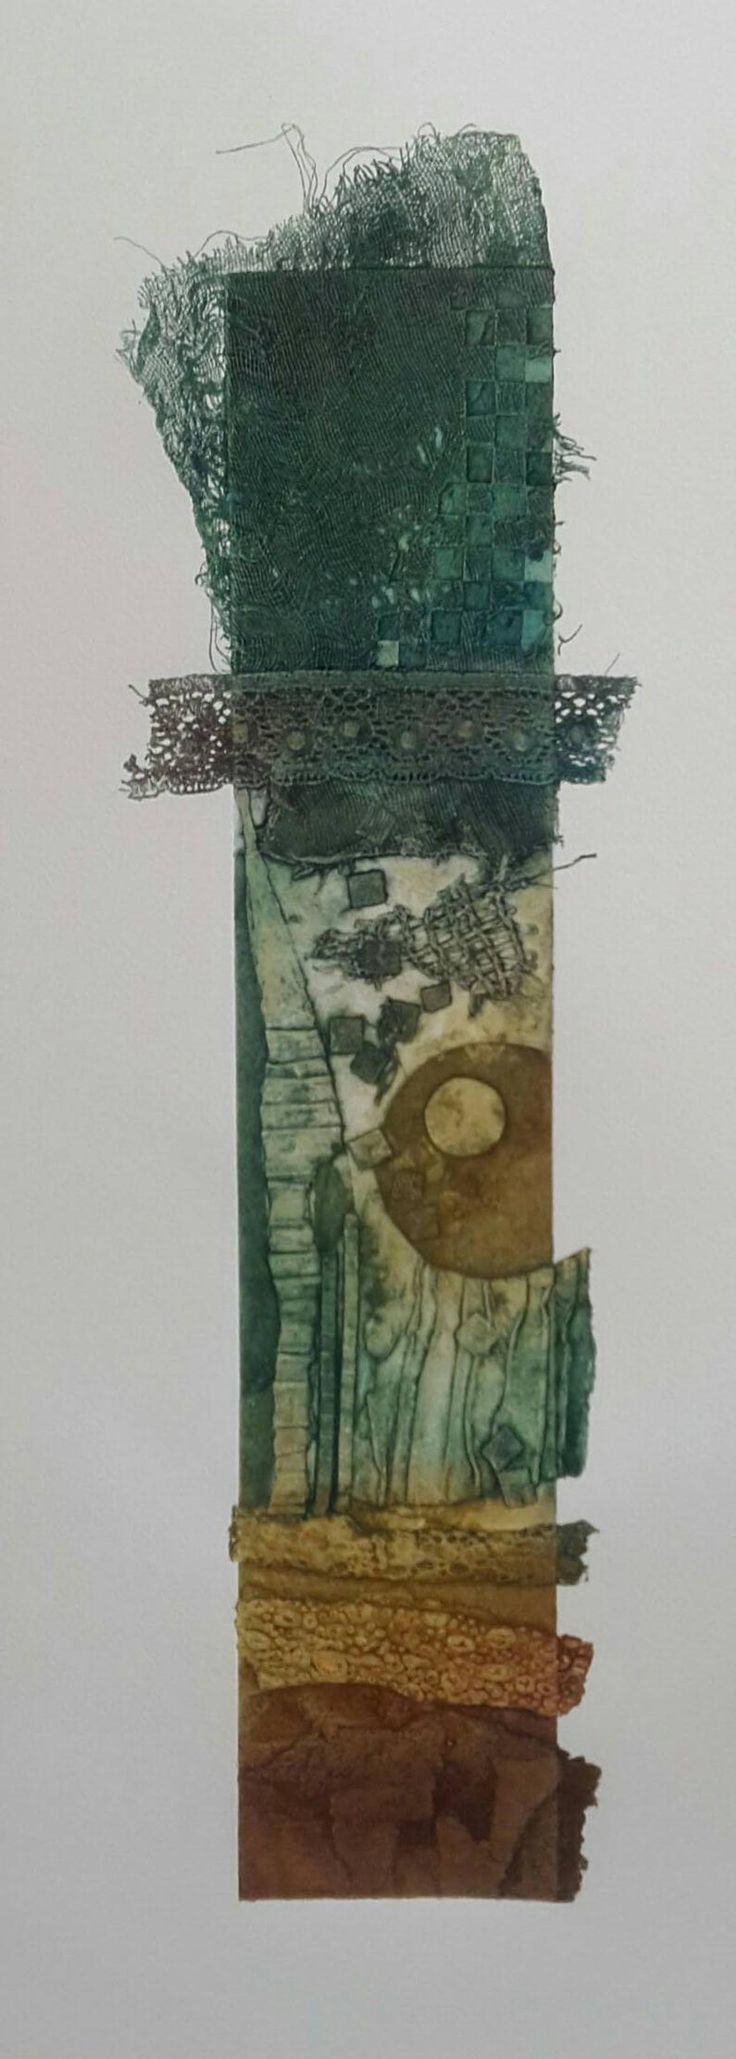 Totem 1 Collagraph Print. Hand coloured Original Print built from snippets of corrugated card, lace, string and more.